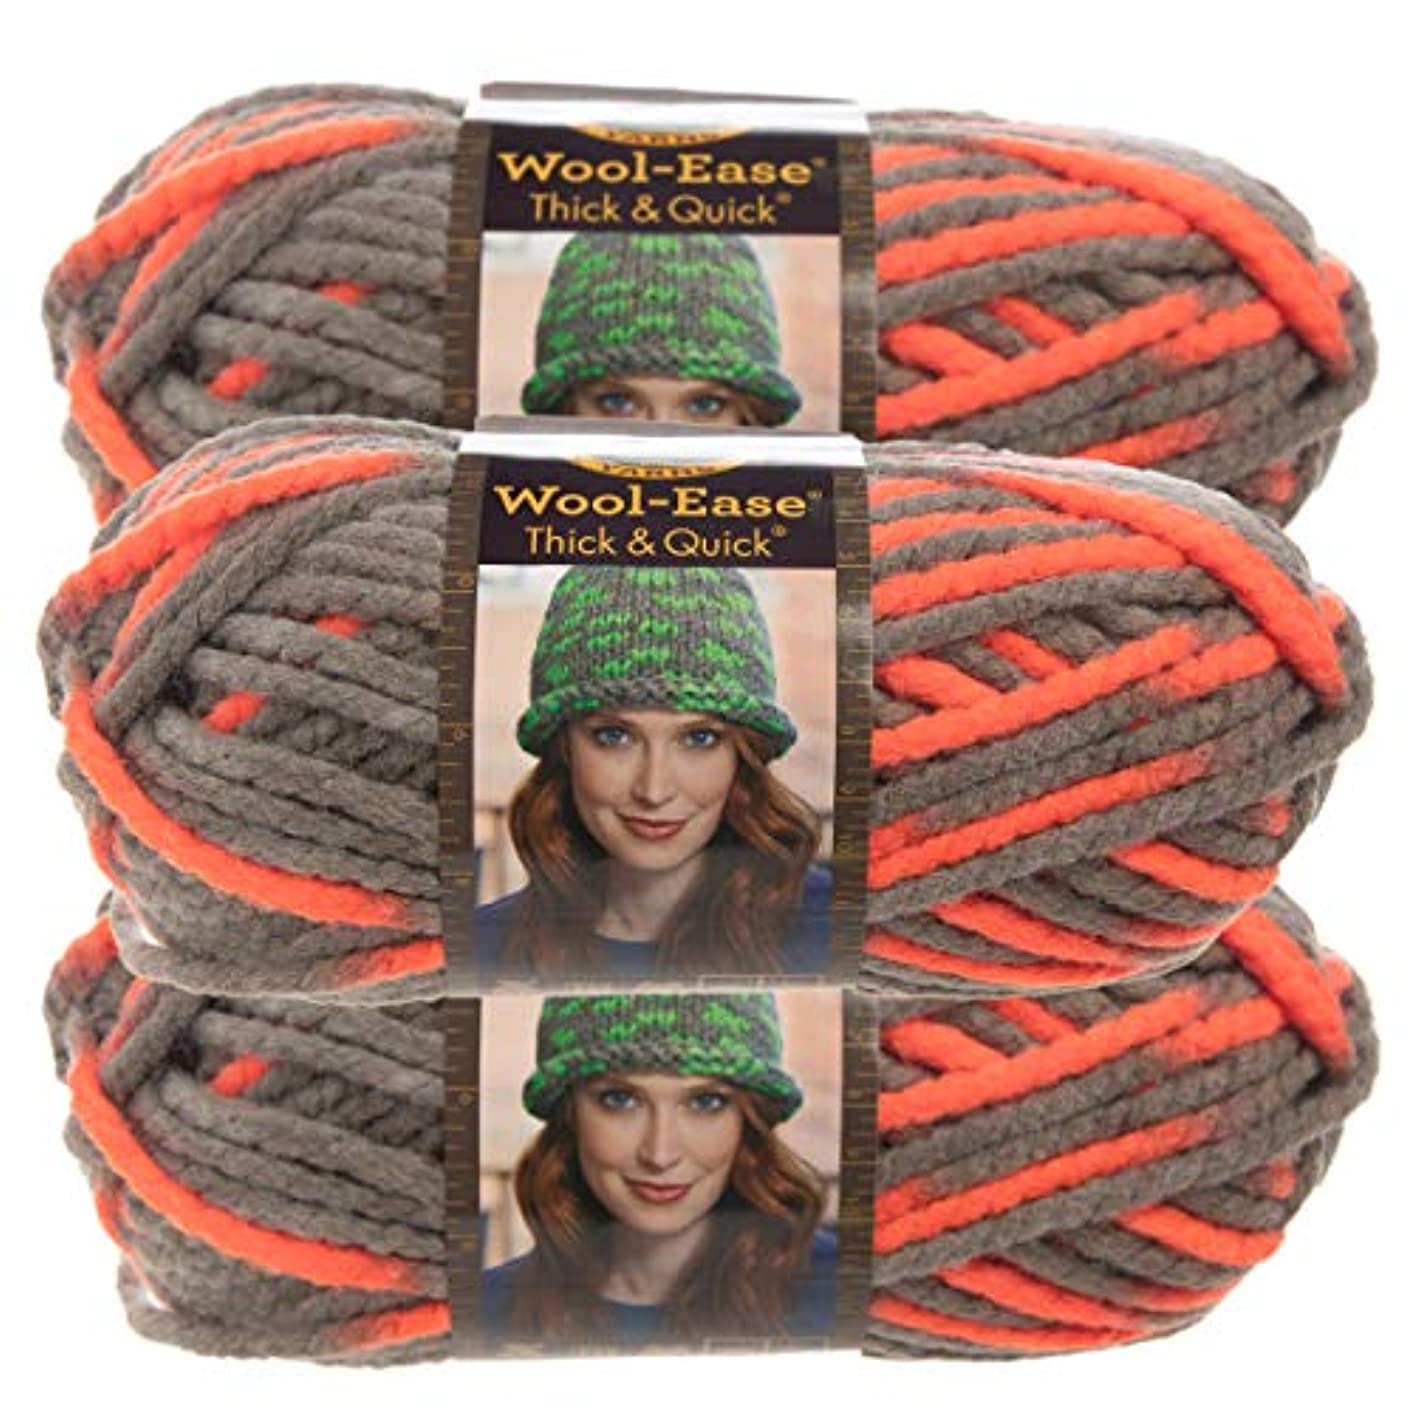 Lion Brand Yarn (3 Pack Wool Ease Super Chunky Yarn for Knitting Crocheting Soft Monarch Orange Gray Yarn Bulky #6